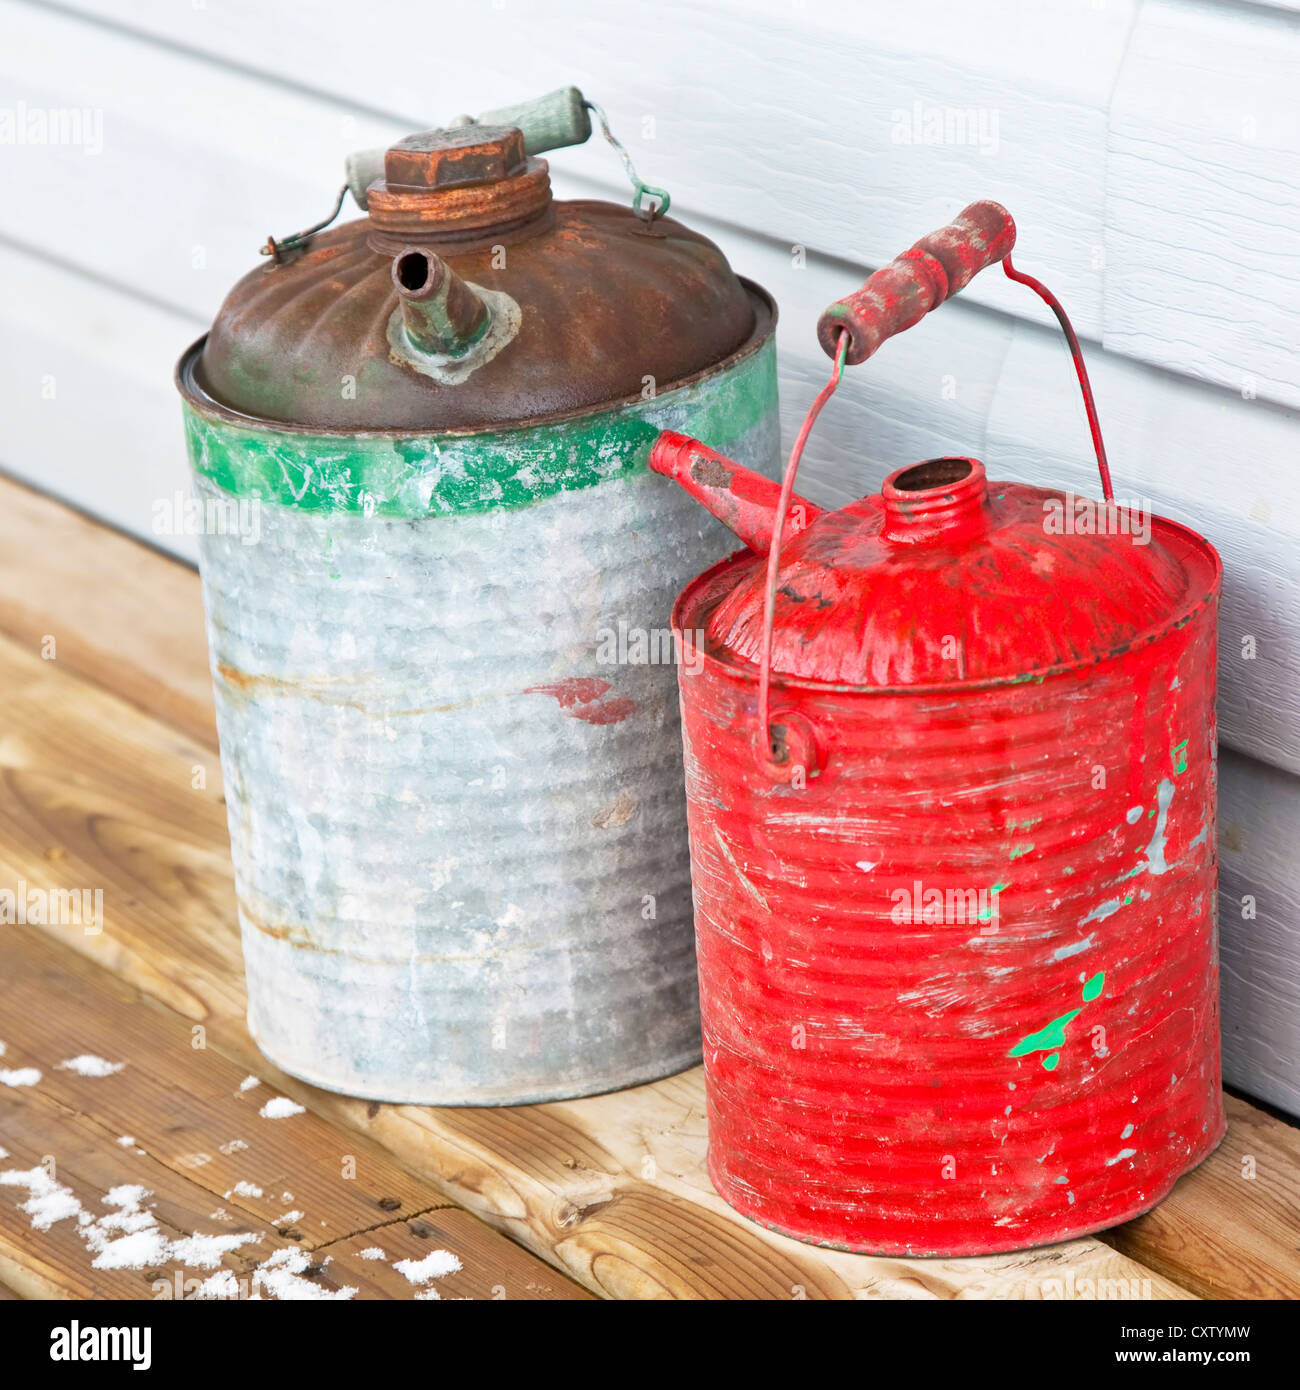 A pair of old antique oil cans made of tin. Originally made for kerosene or stove oil. - Stock Image